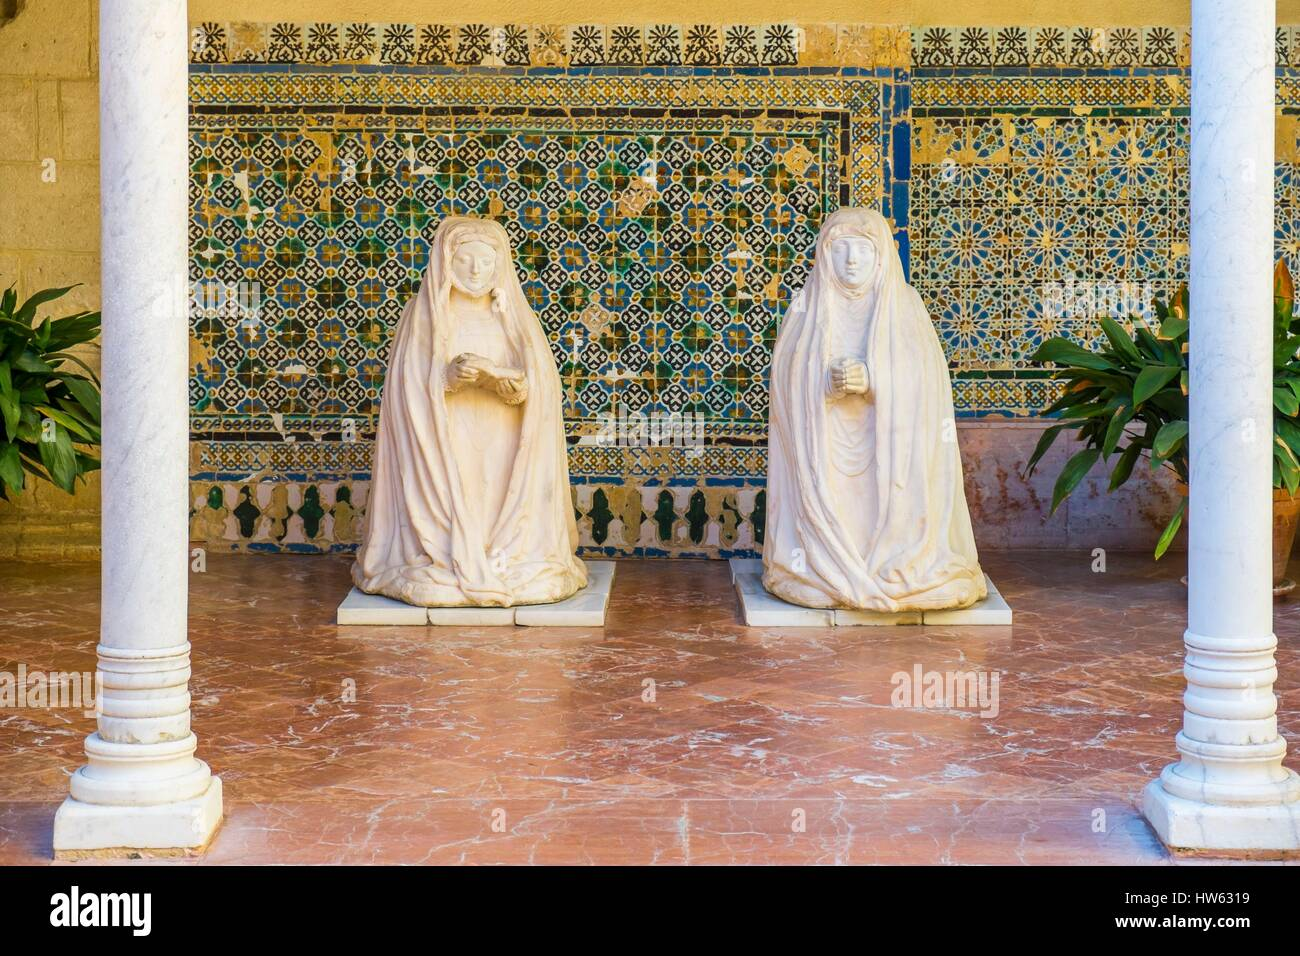 Spain, Andalusia, Seville, Isla de la Cartuja, the Monastery of the Cartuja - Stock Image